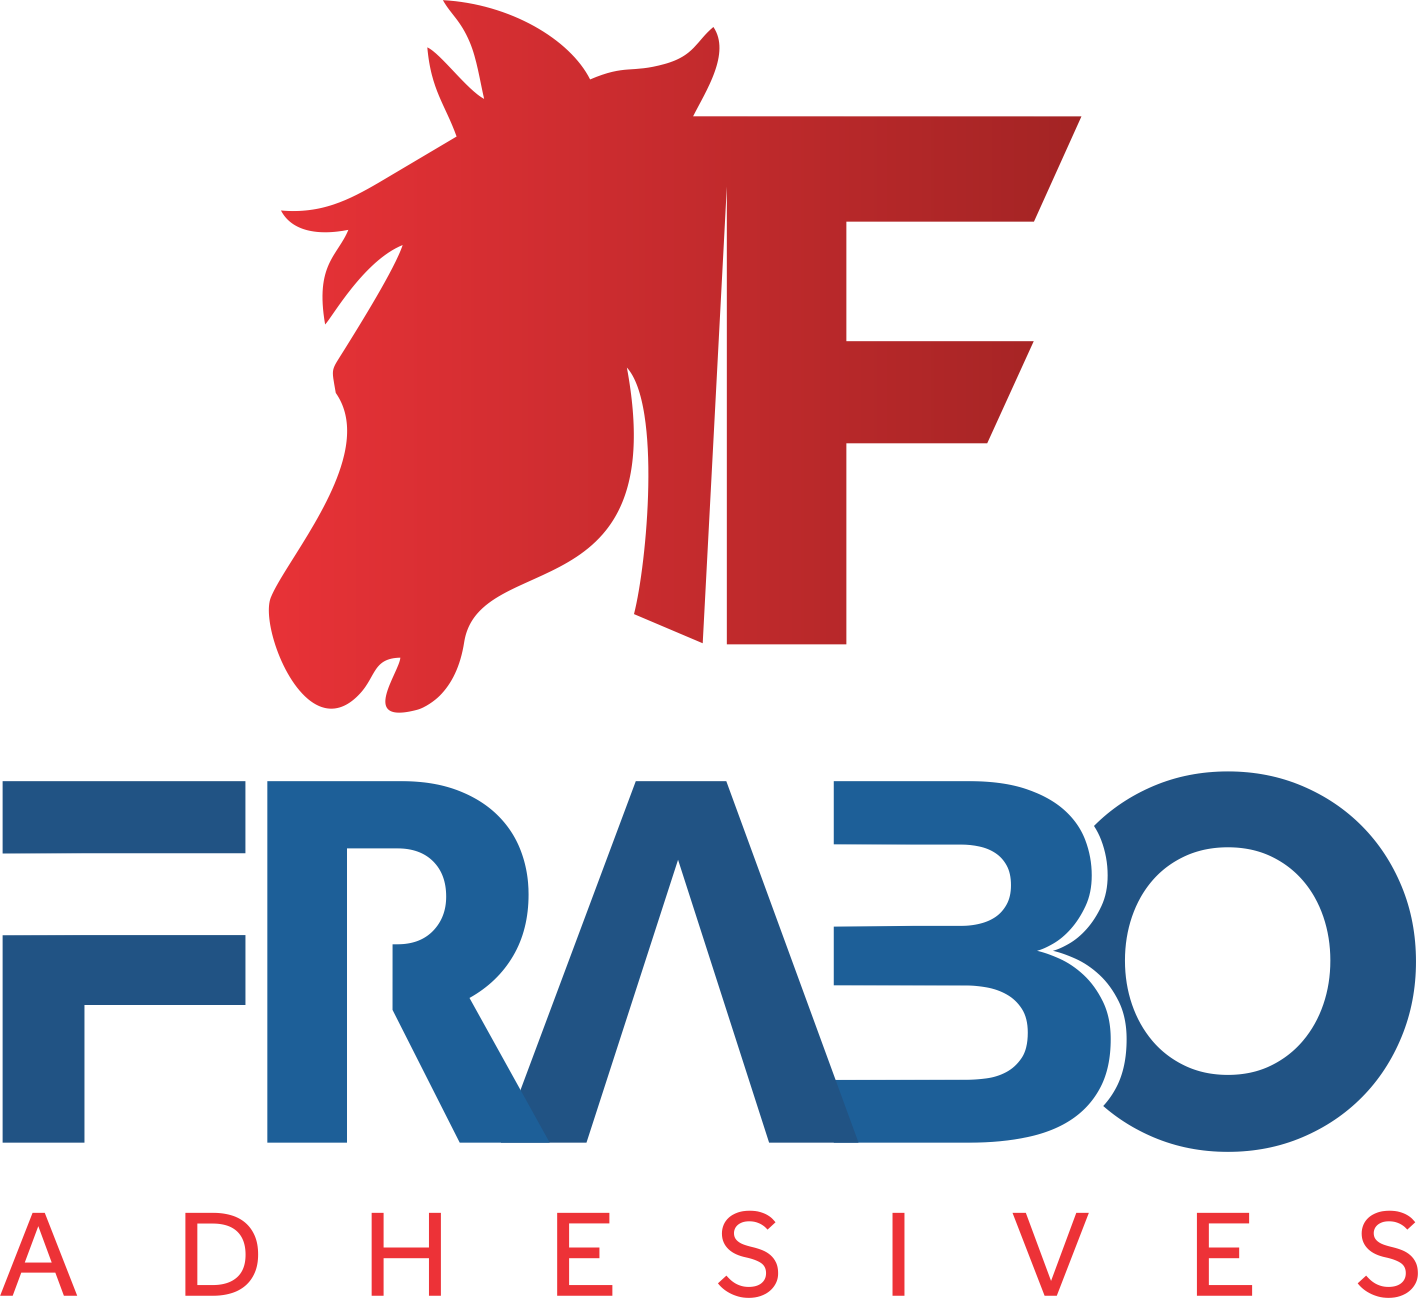 frabo - adhesives